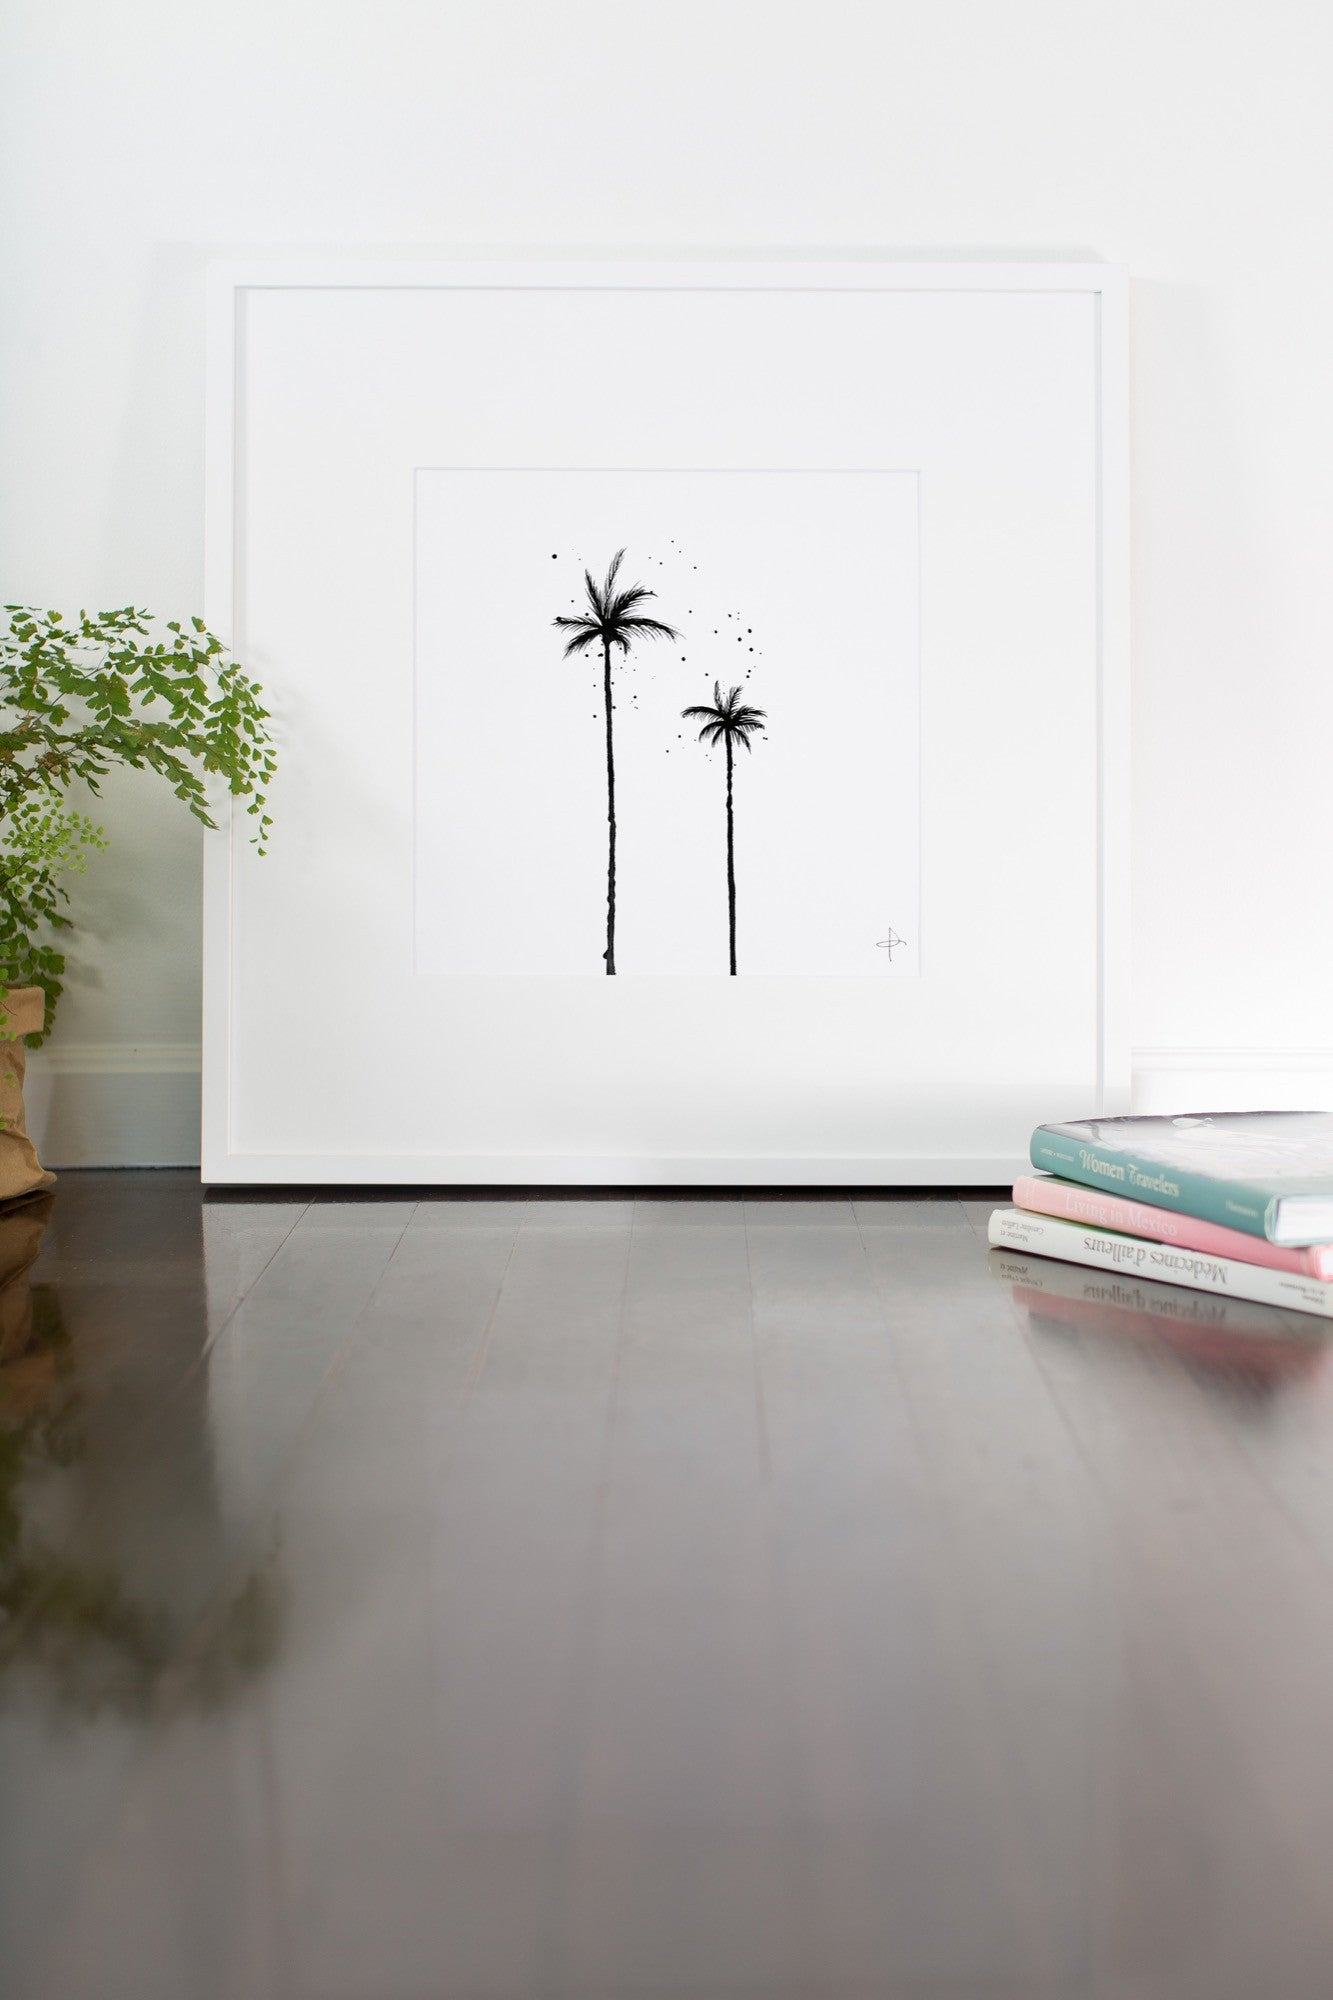 How to grow palm trees with a drop of ink